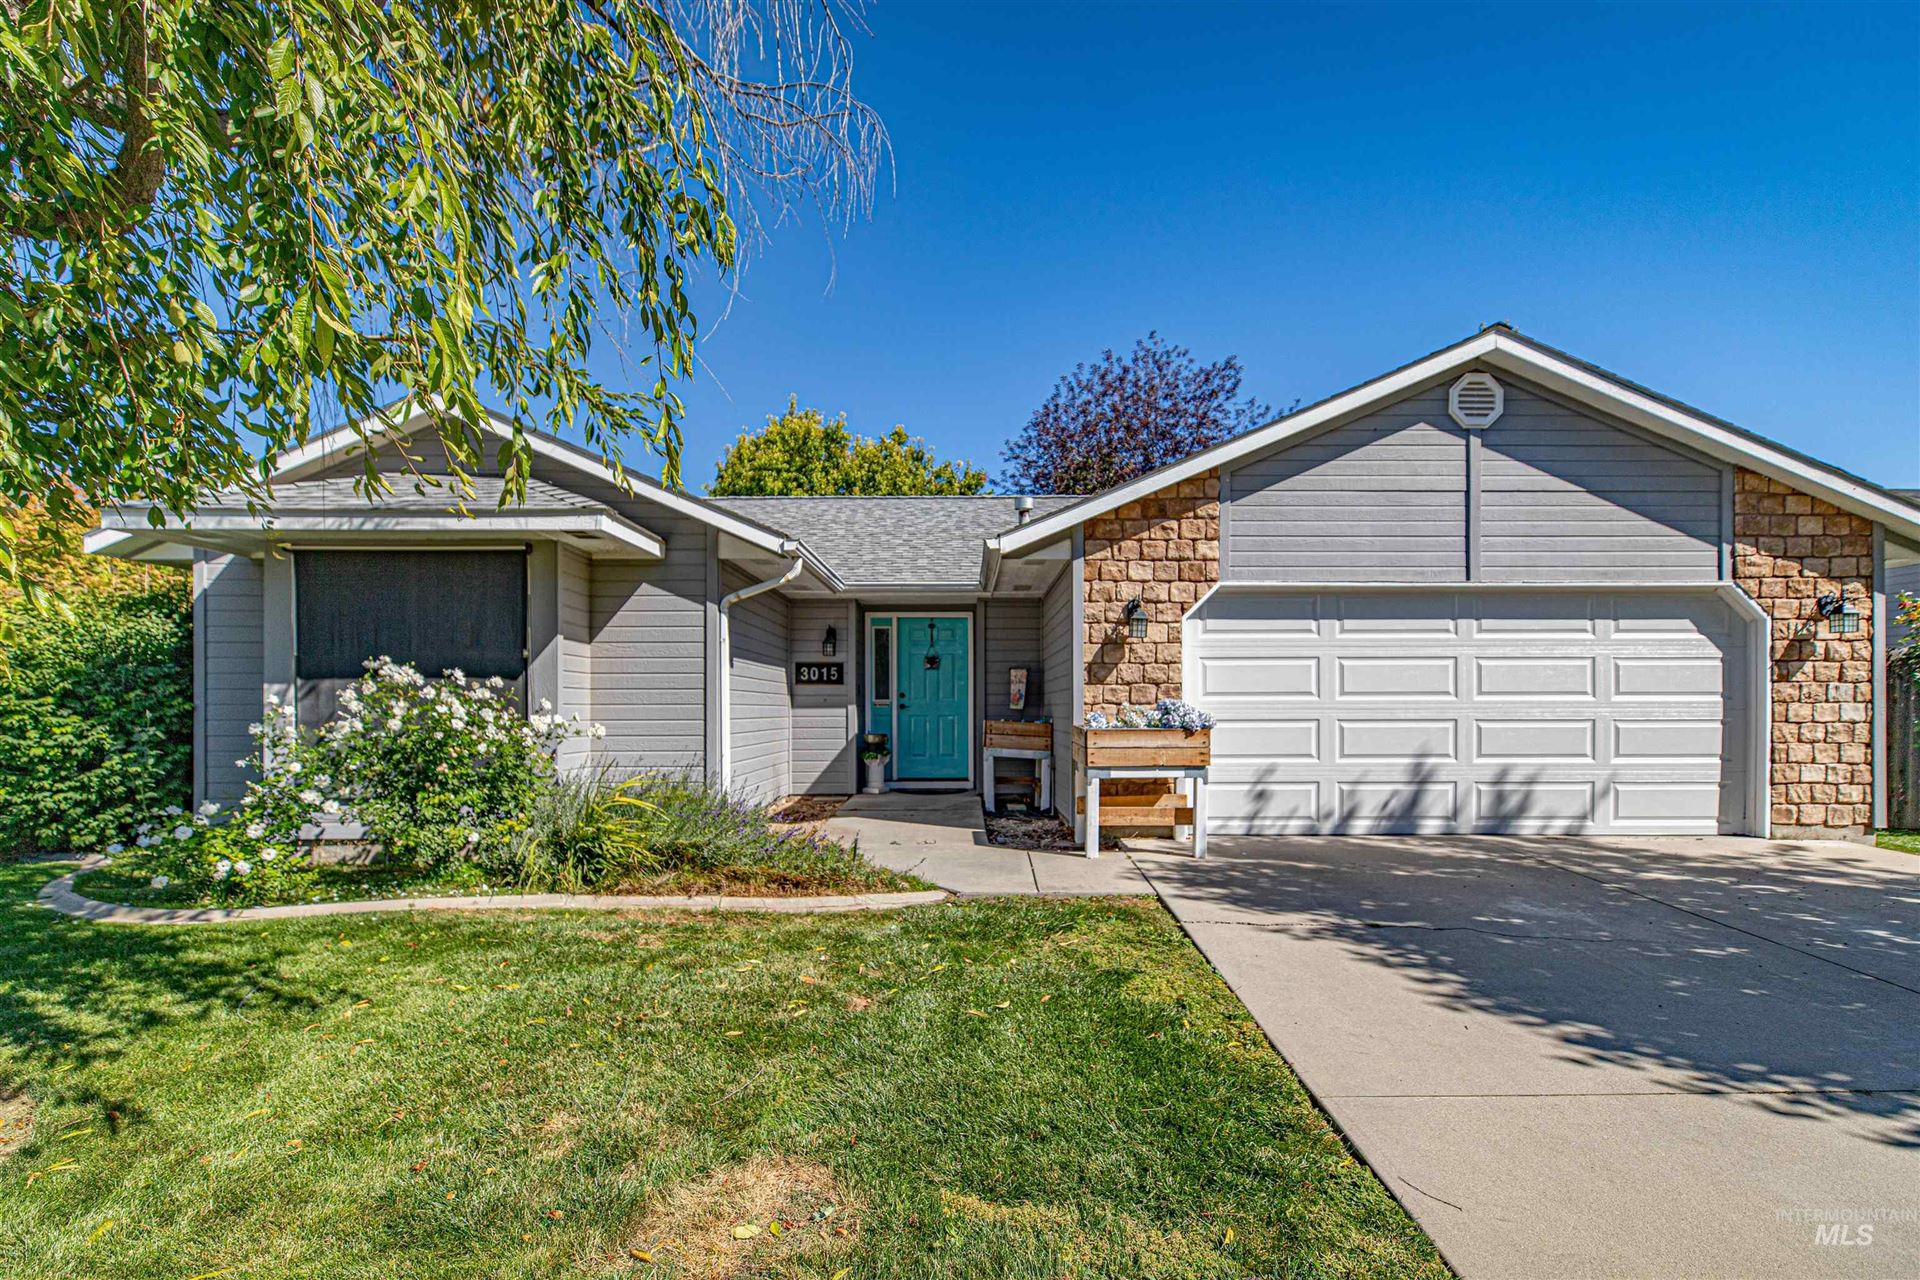 Photo of 3015 Manchester Dr., Caldwell, ID 83605 (MLS # 98819450)